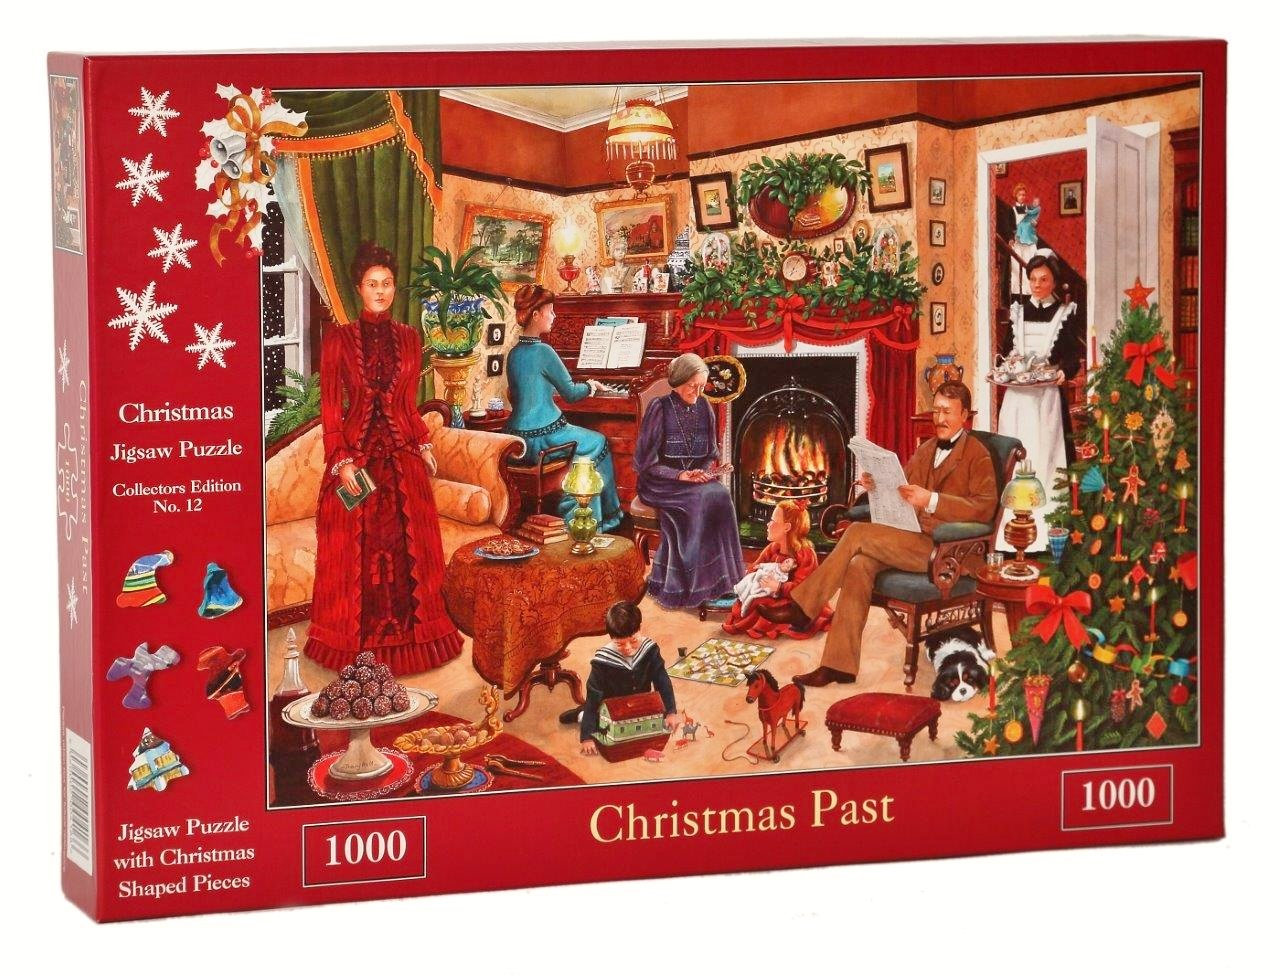 1000 Piece Jigsaw Puzzle - 2017 Christmas Collector\'s Edition No. 12 ...